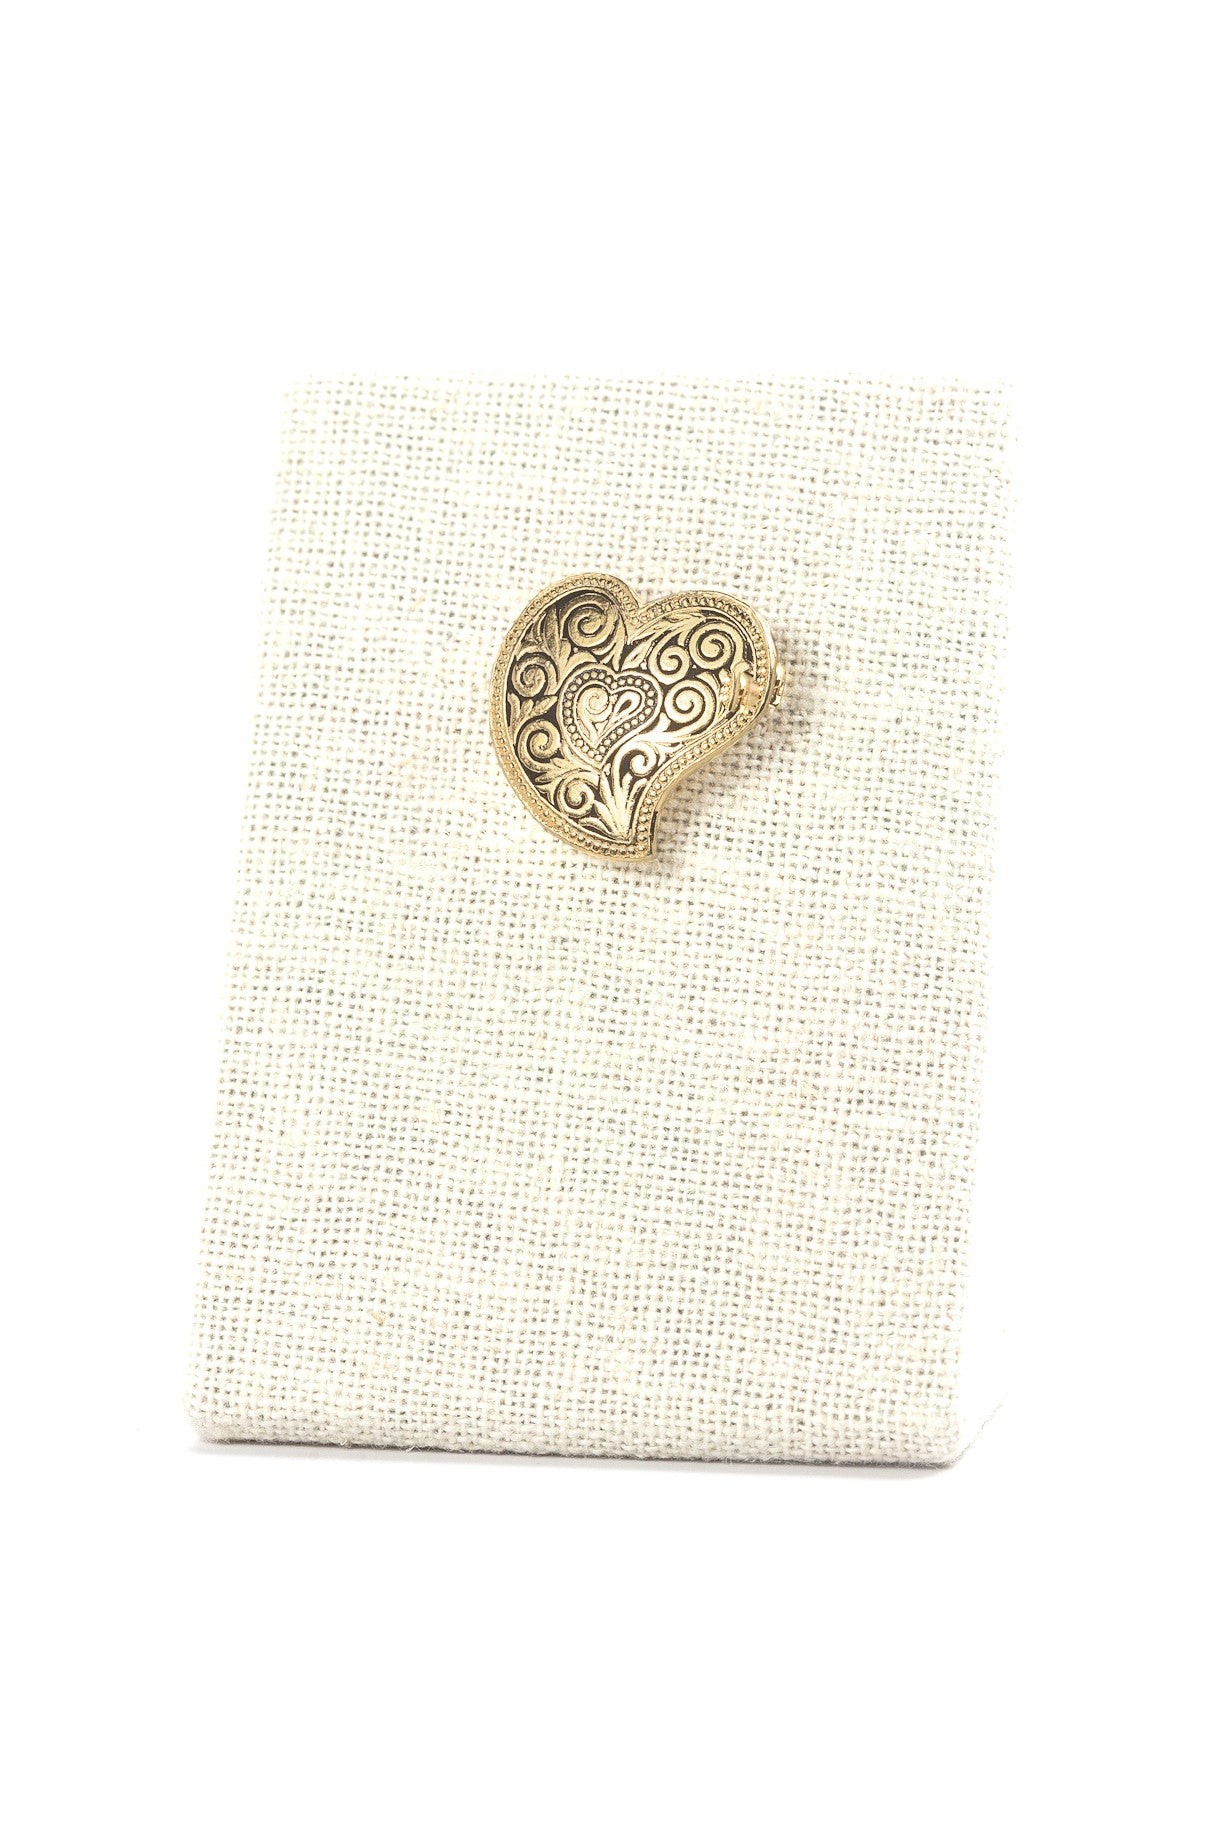 50's__Spain__Mini Heart Brooch